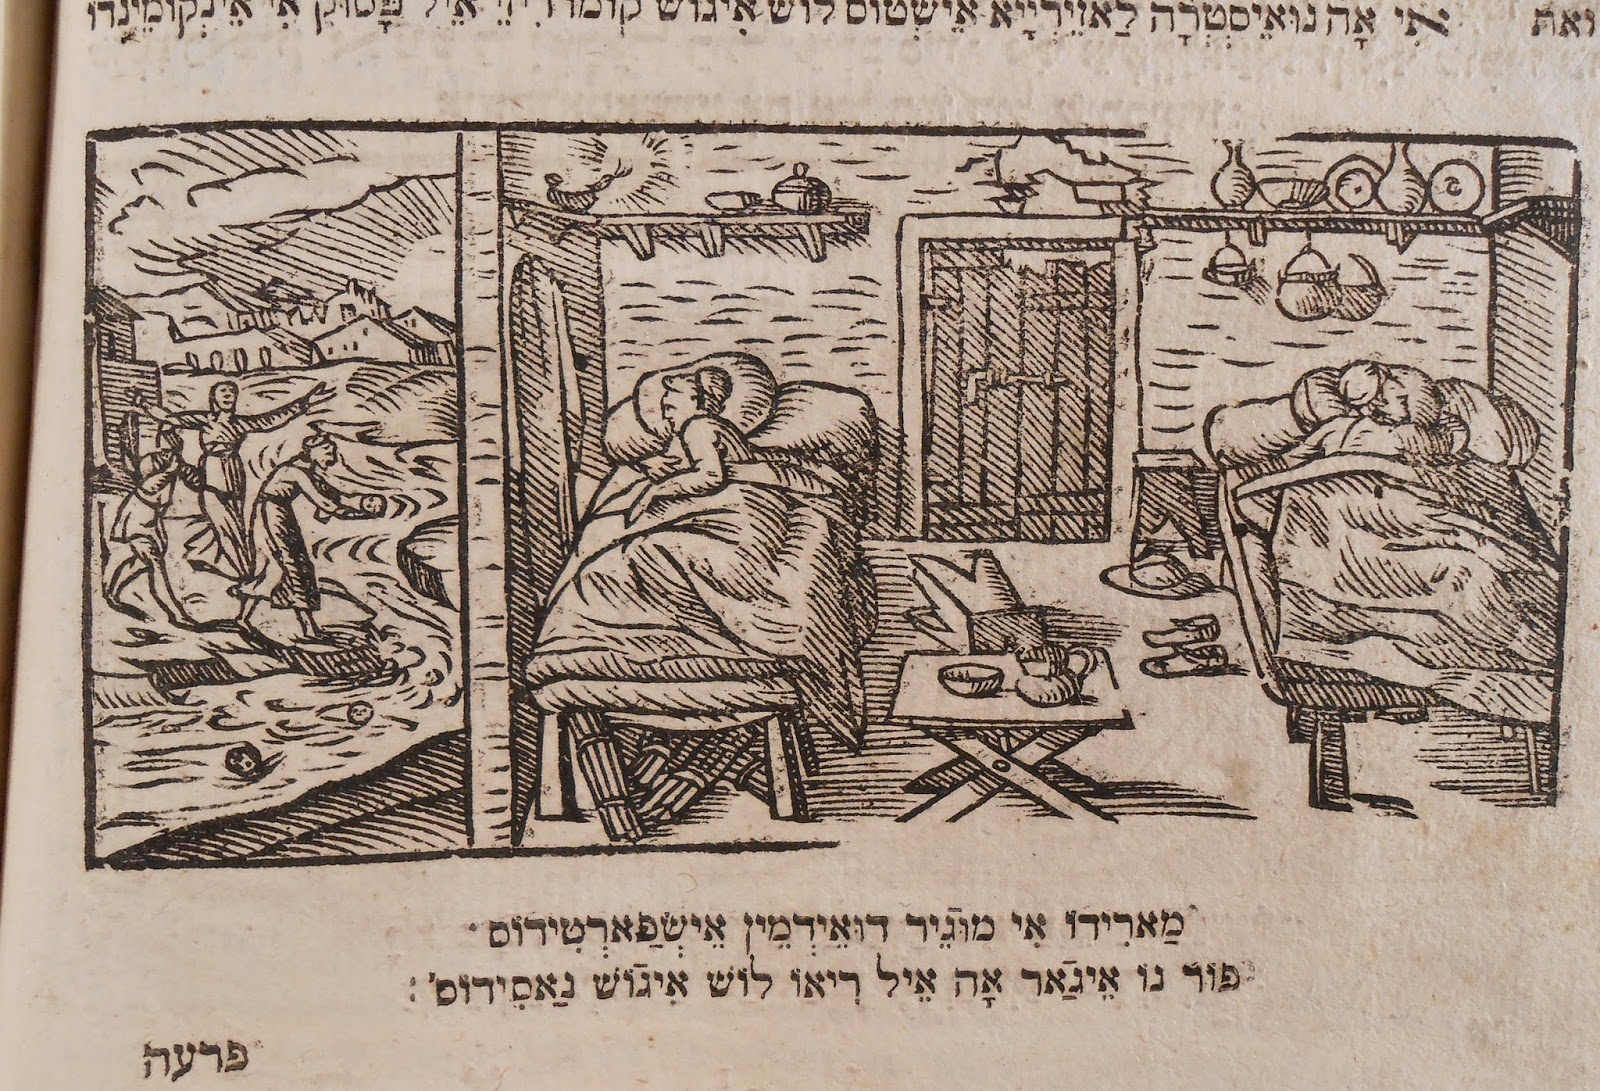 A woodcut showing two figures in bed inside their home, while outside three figures seem to lament over babies in a river.